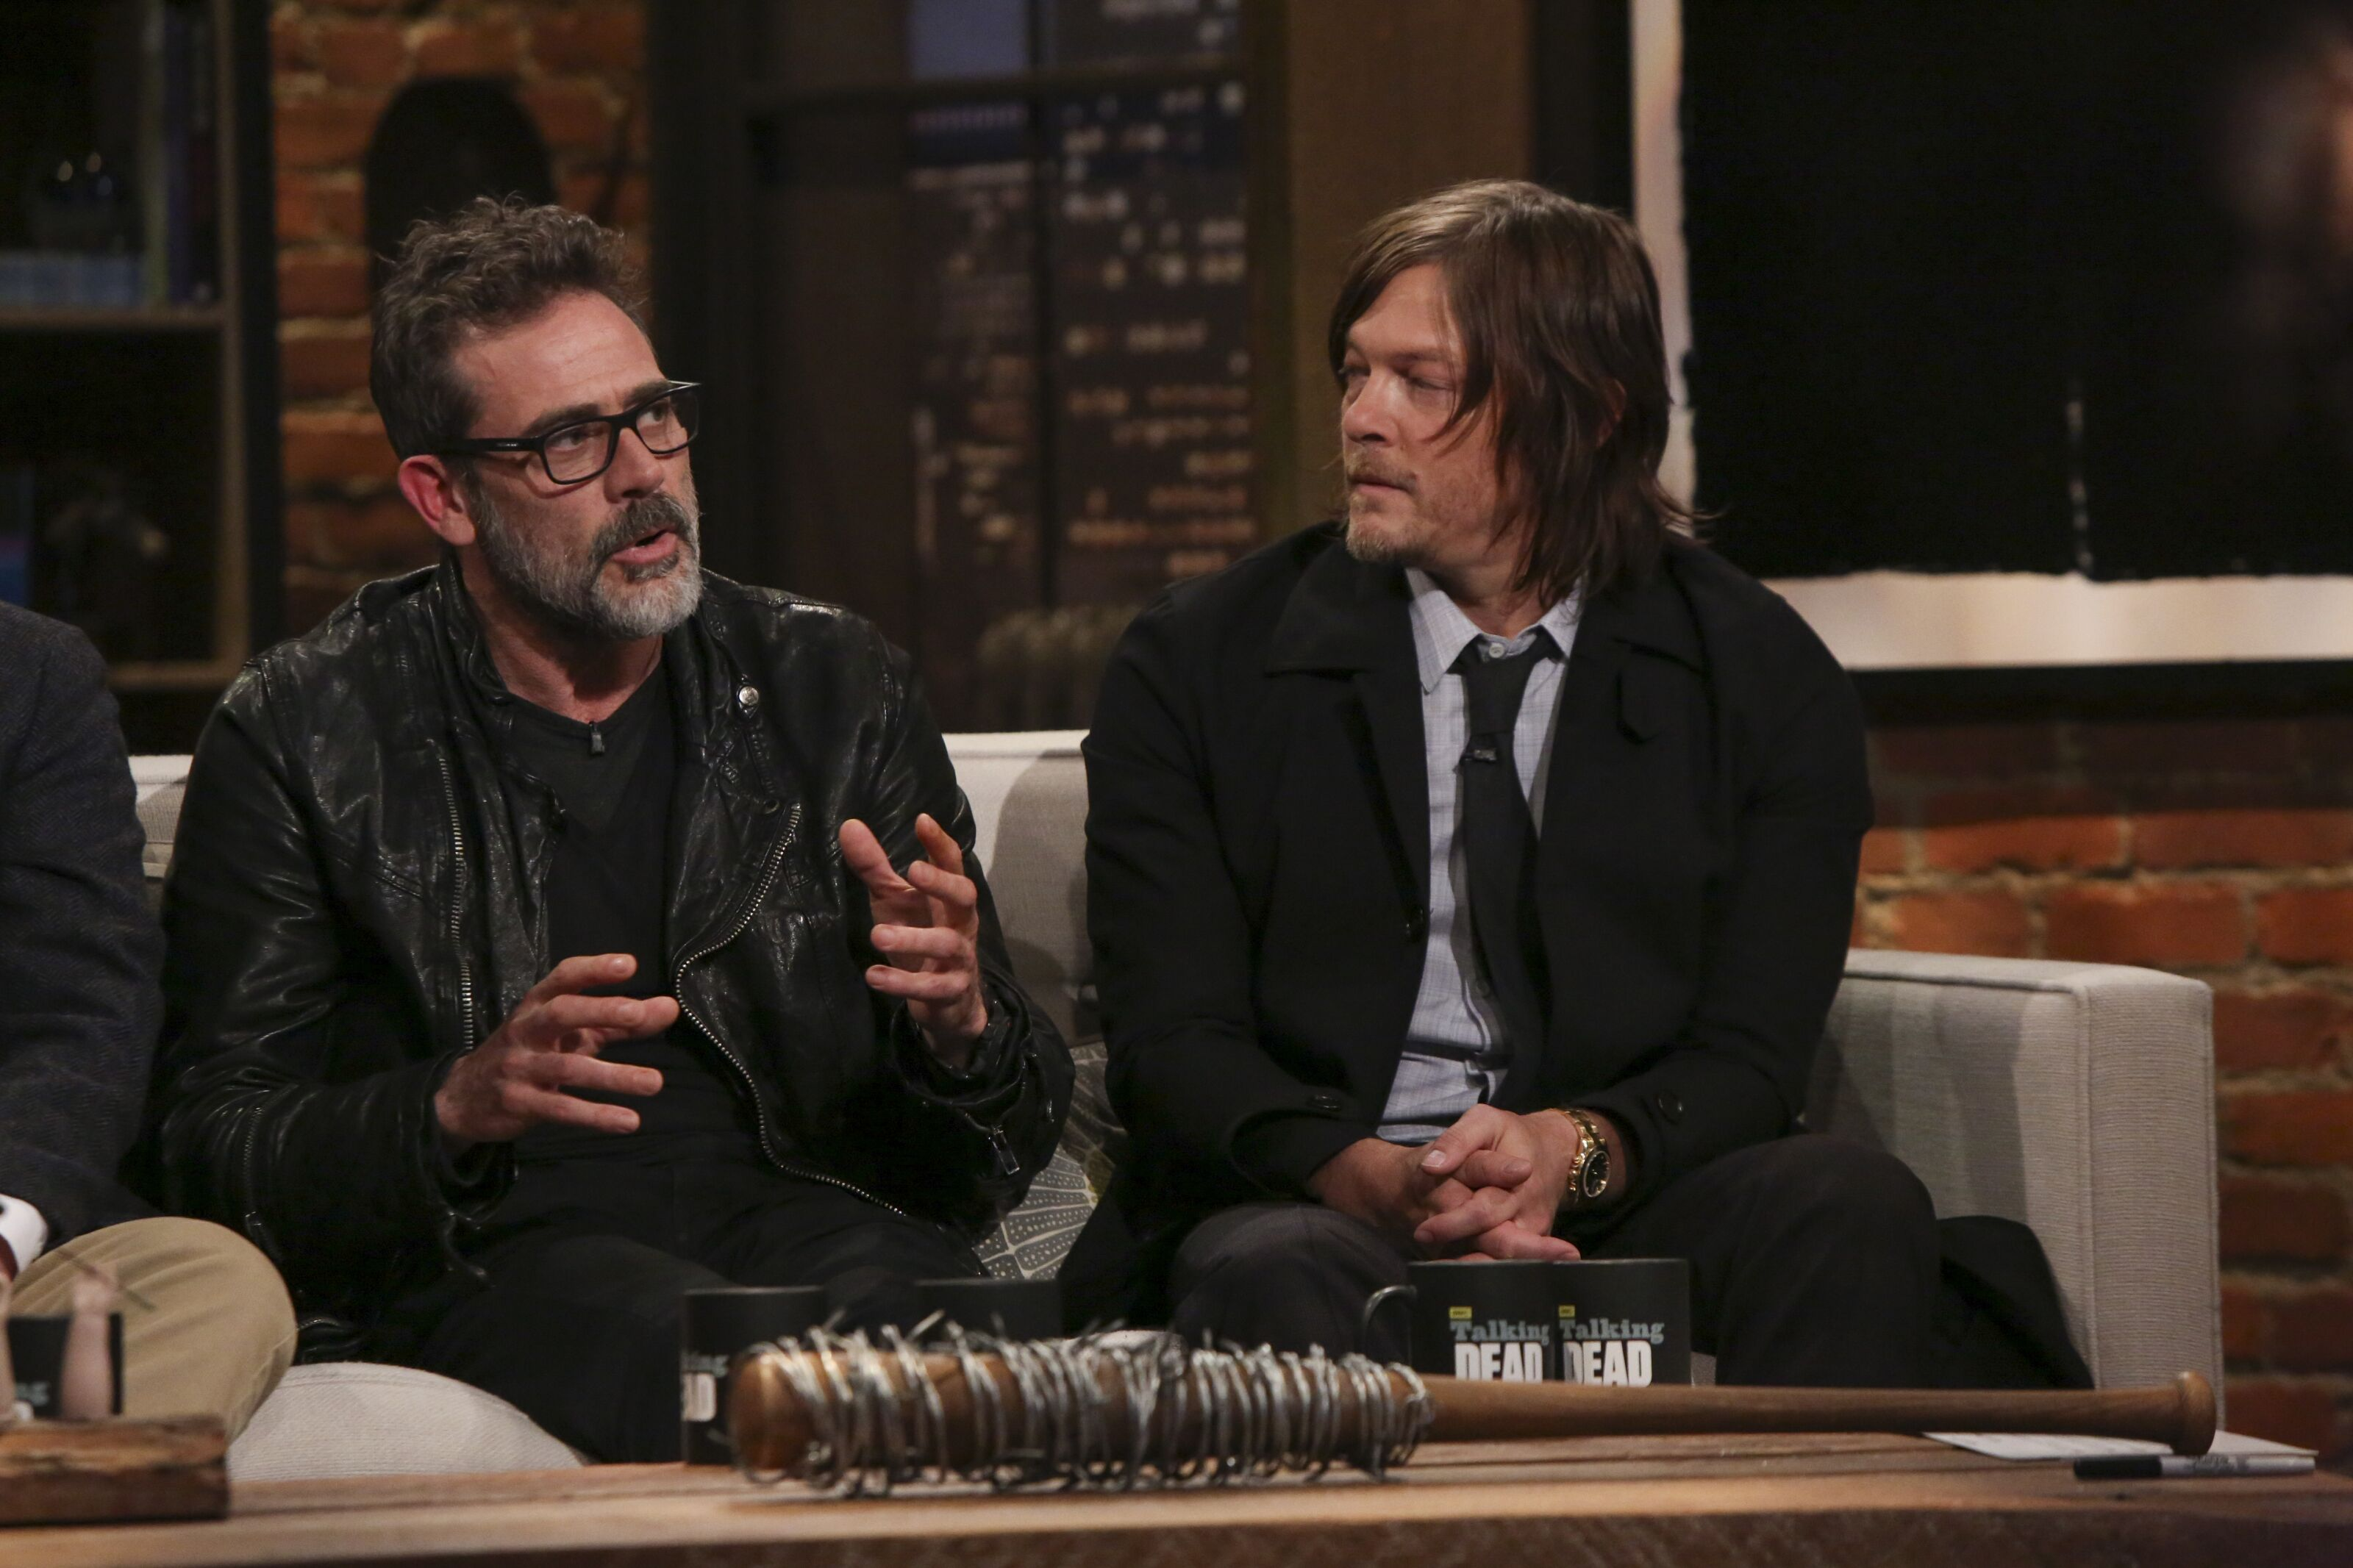 What time is Talking Dead on tonight, October 6?